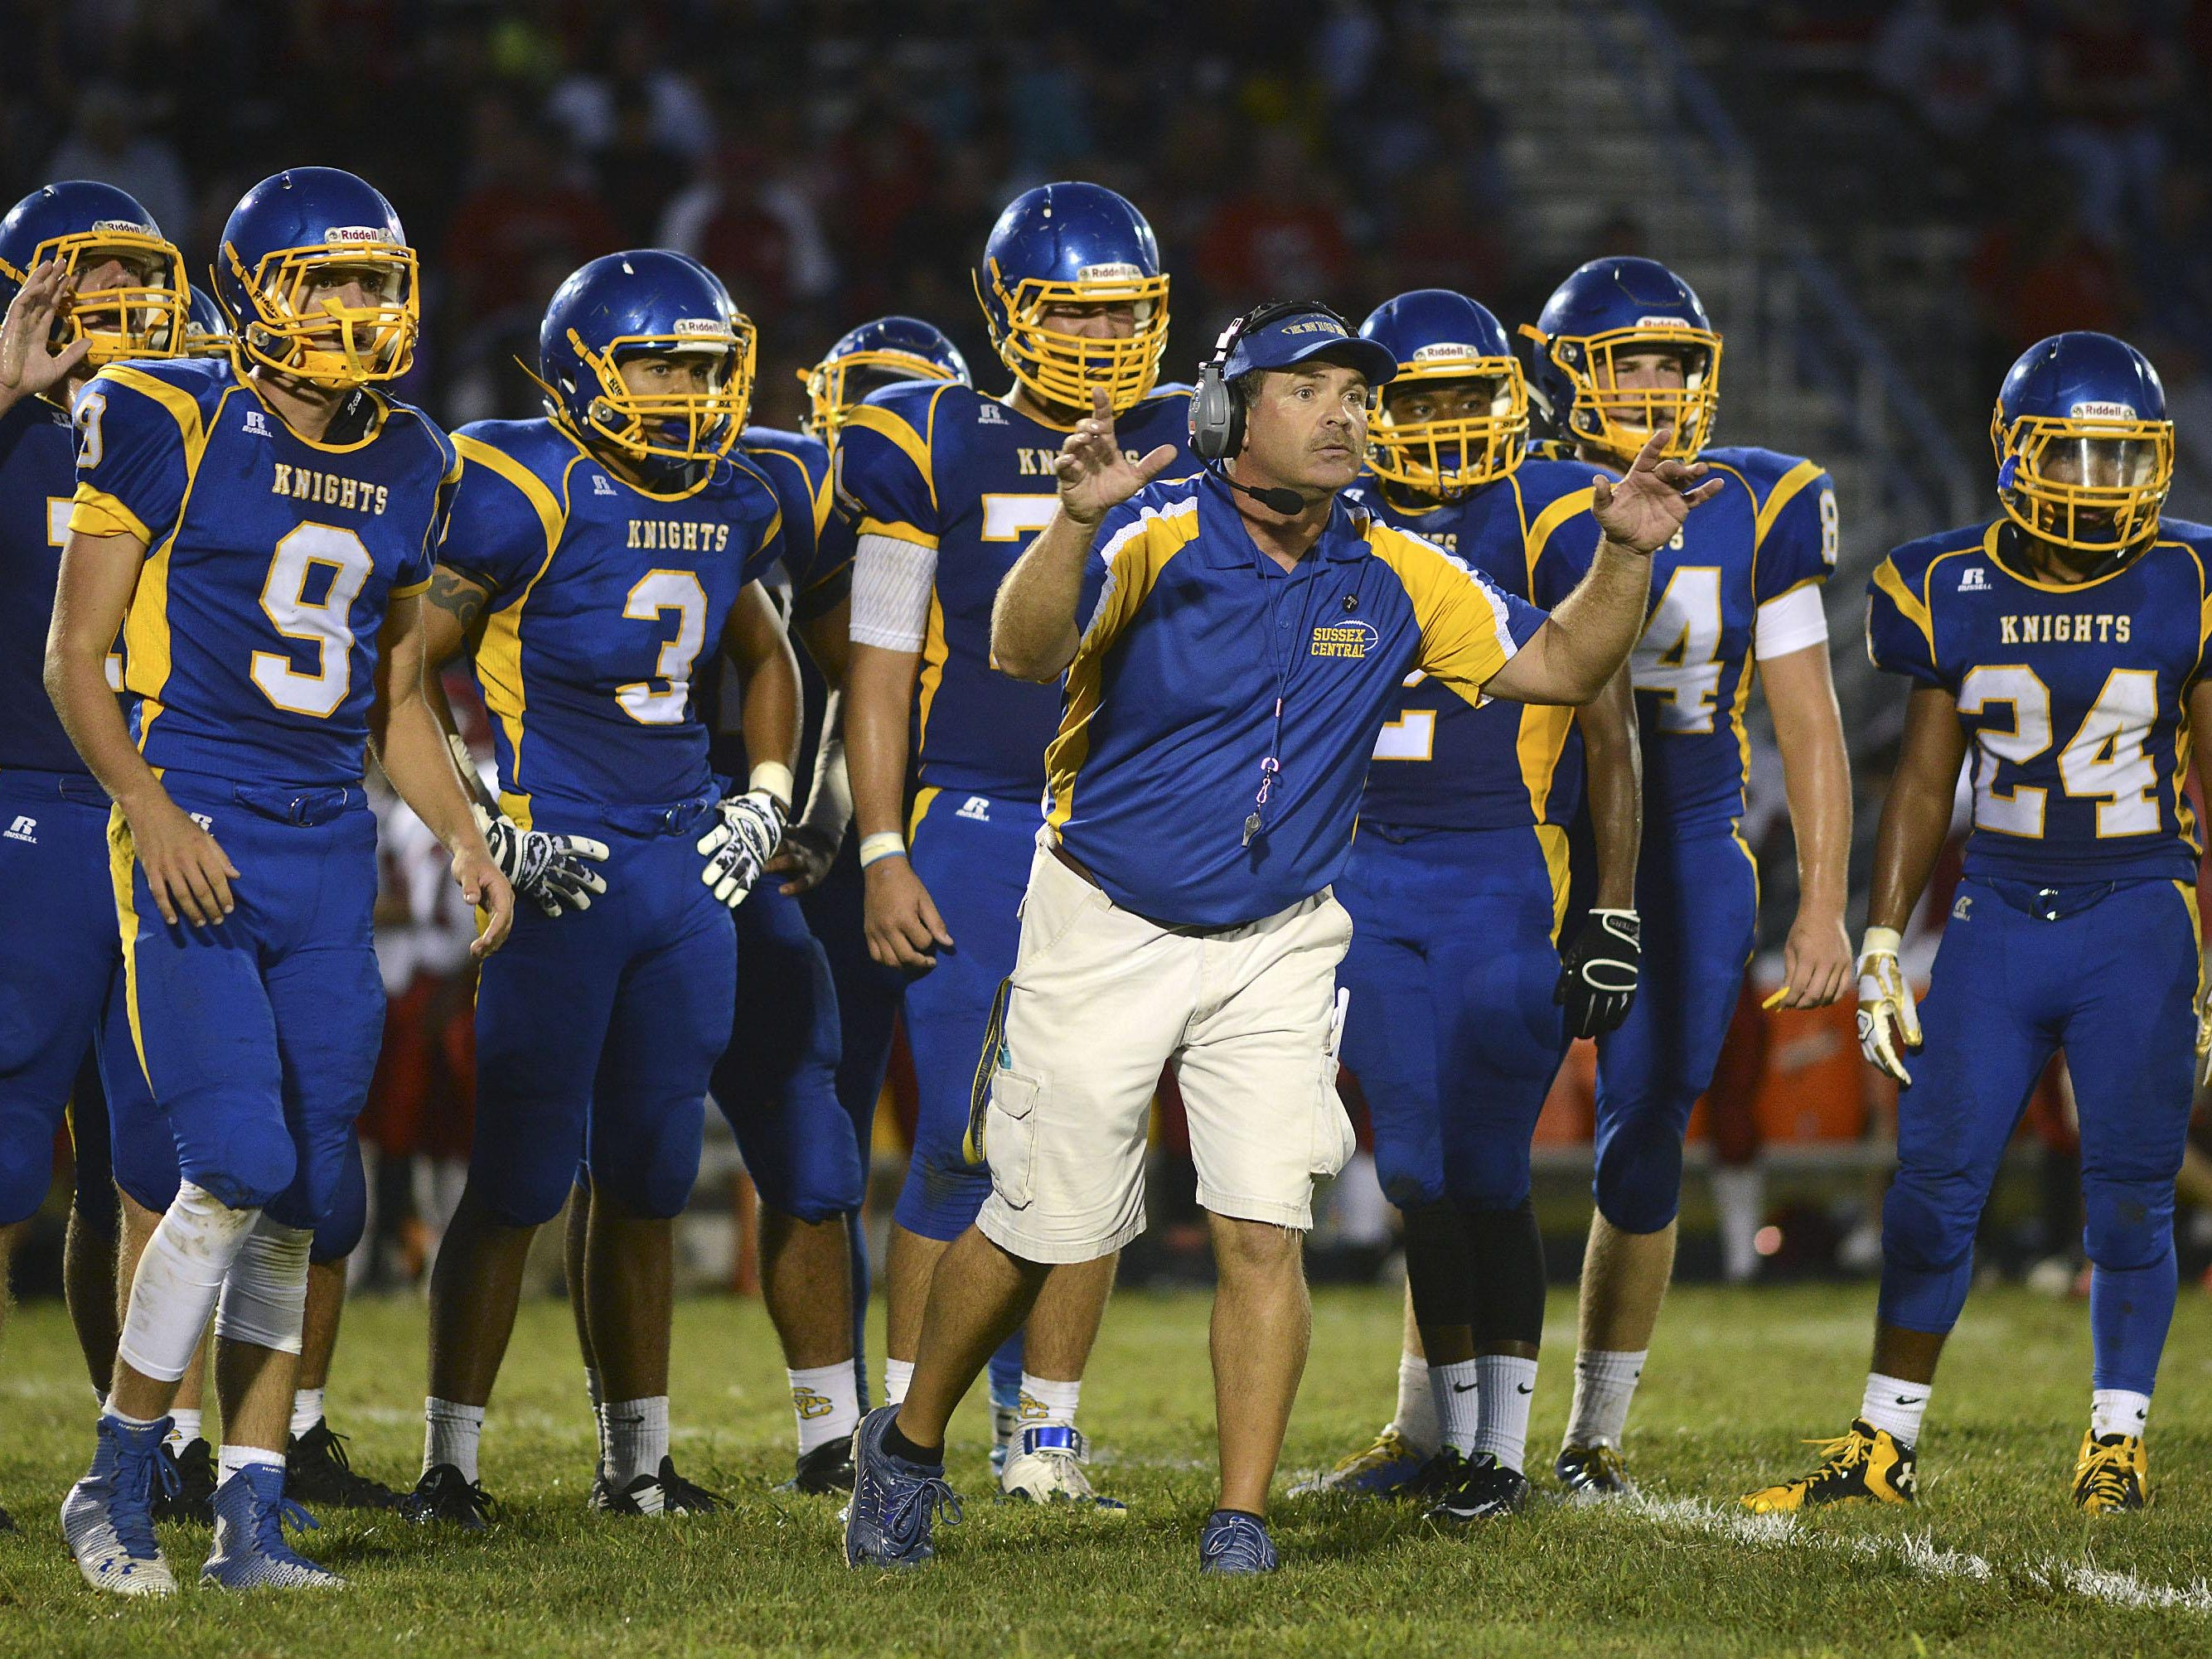 Central Sussex head coach John Wells asks fellow coaches for a play during a timeout Friday night at Central Sussex High School in Georgetown.